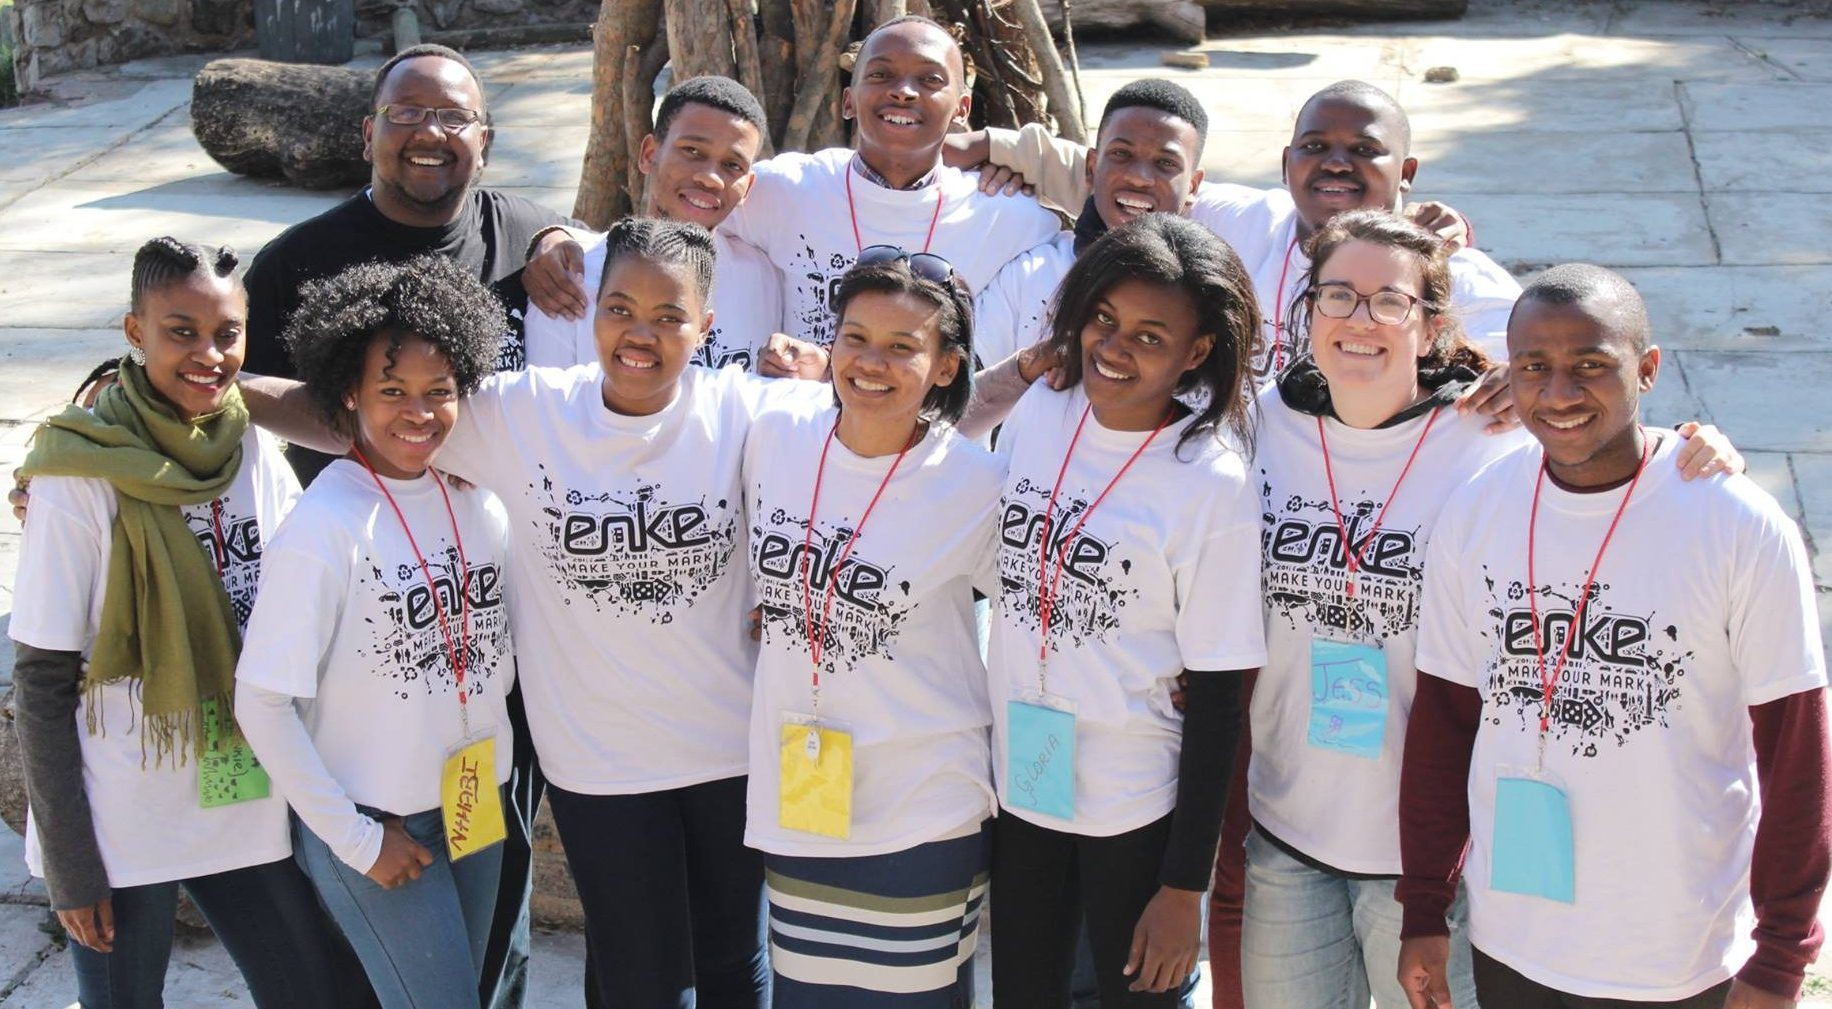 Group Picture of 2016 enke: Ignition Program Participants